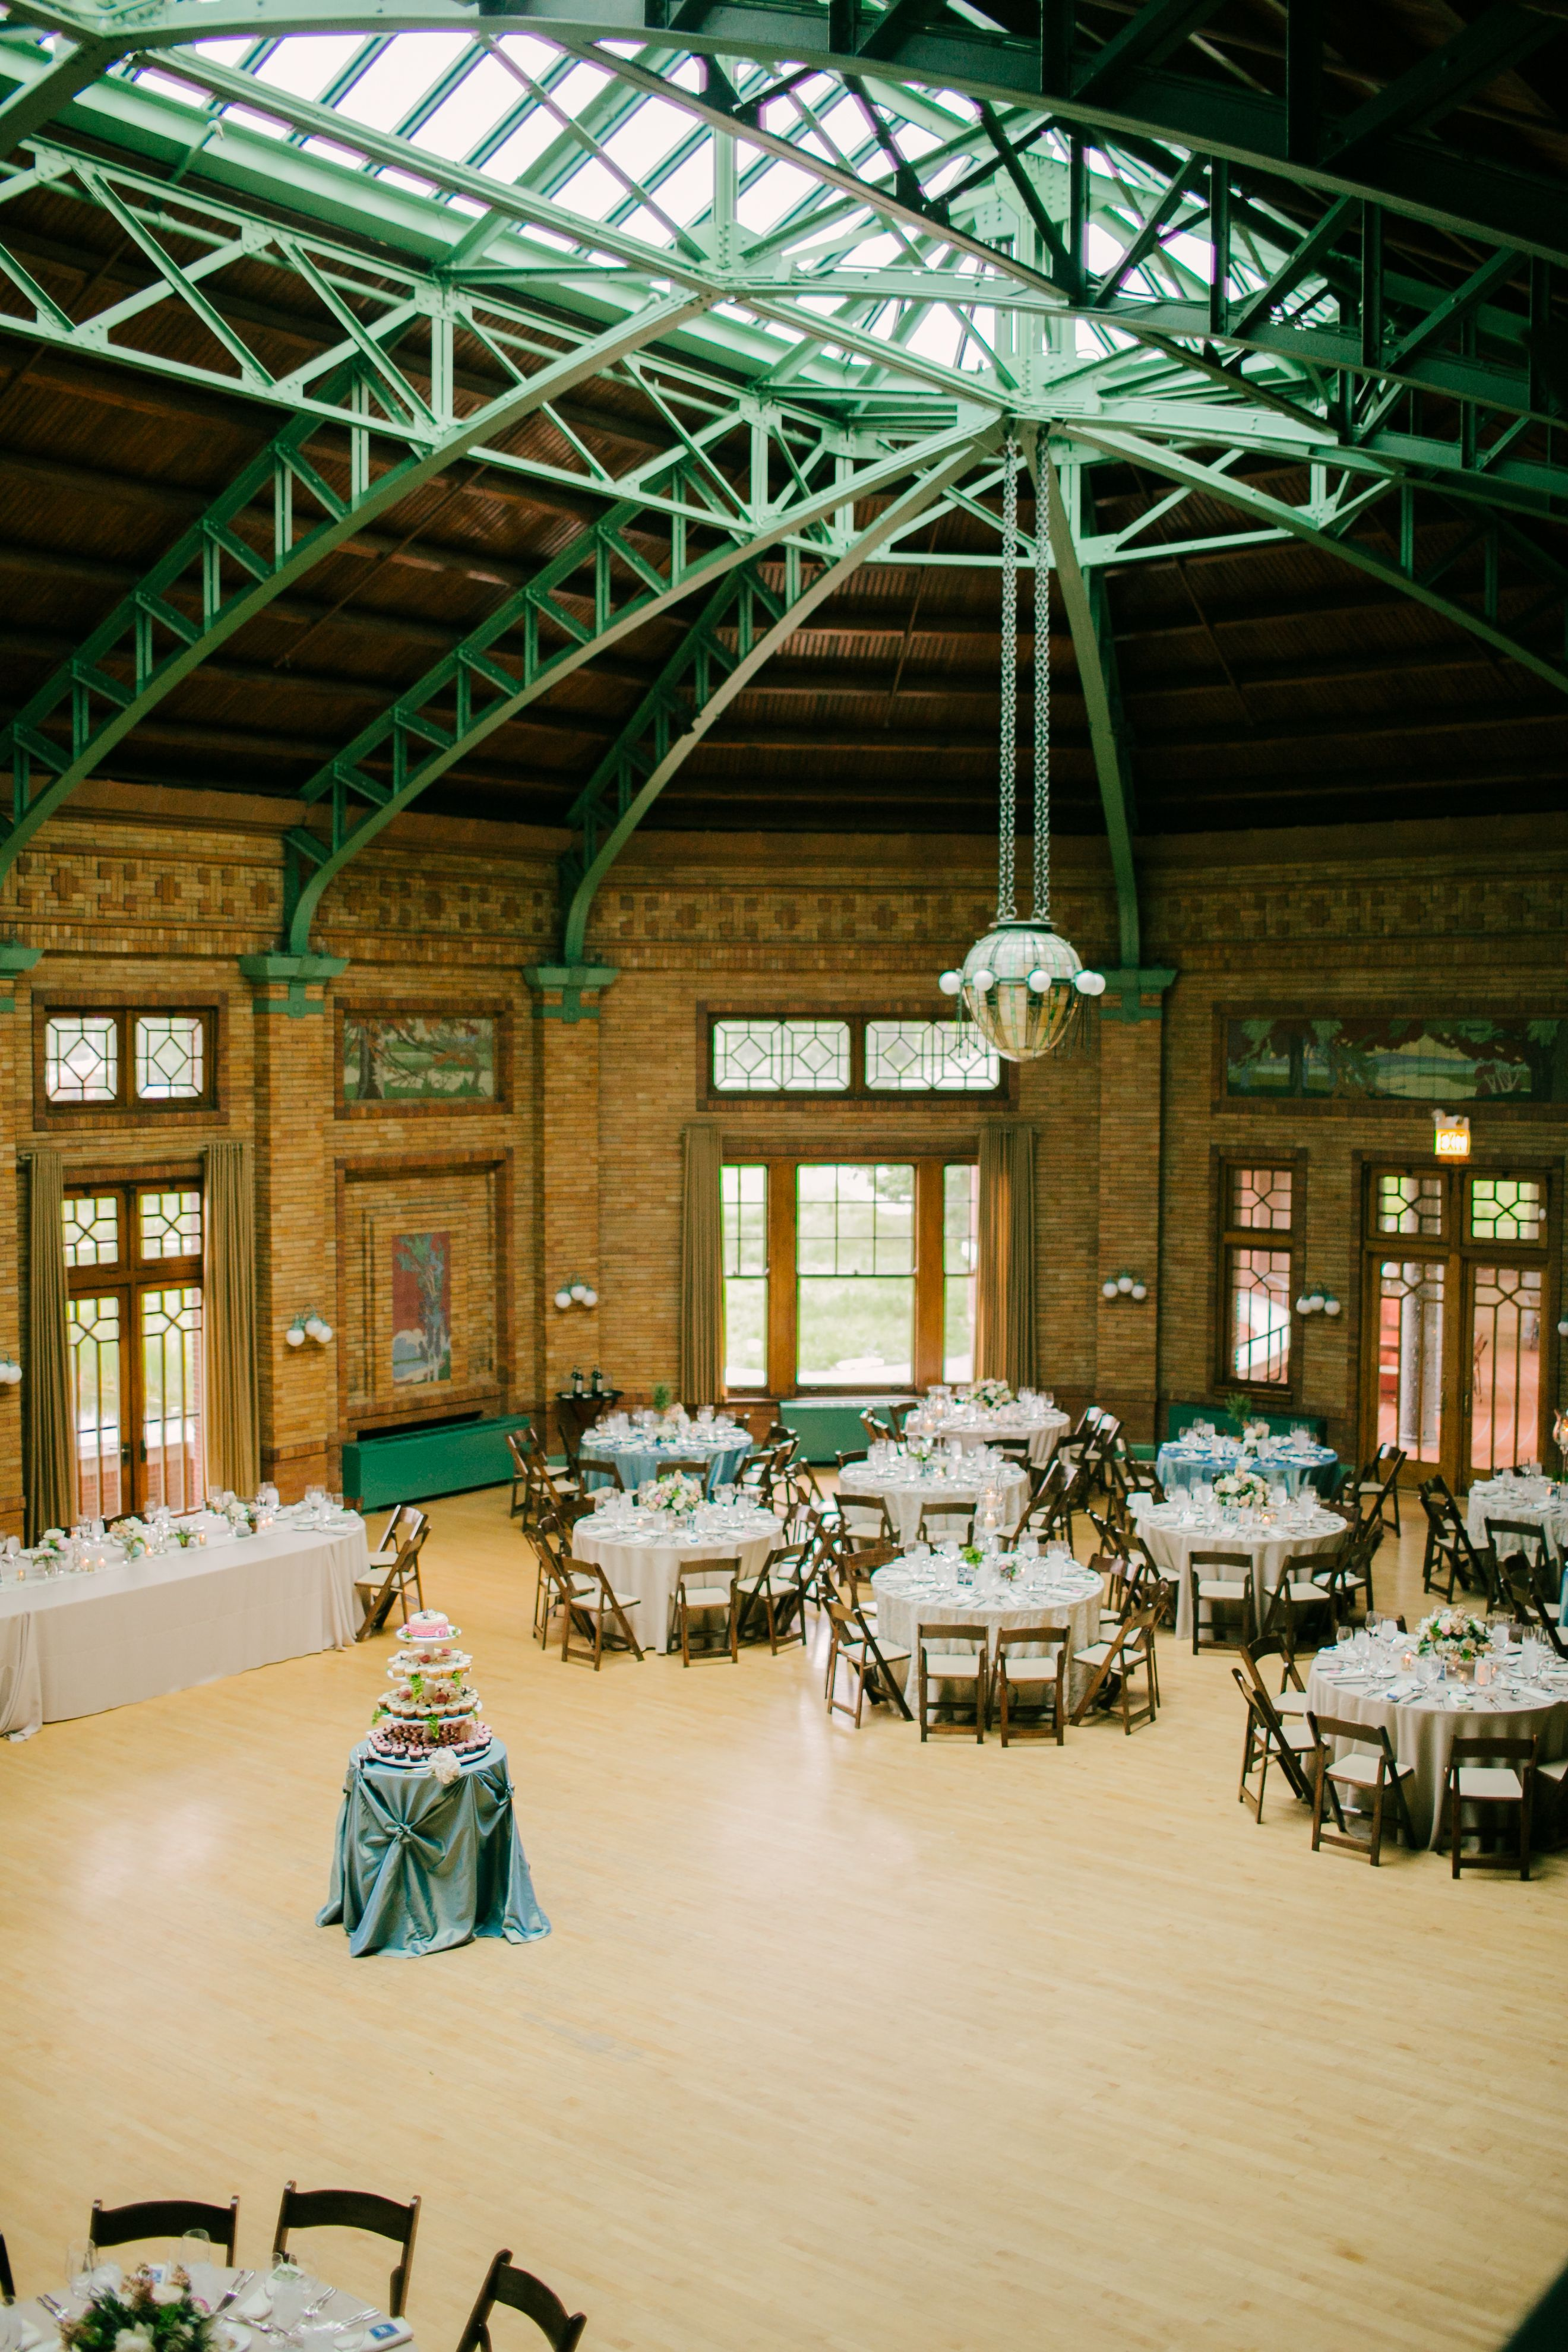 Chicago Wedding Venue Cafe Brauer at the Lincoln Park Zoo